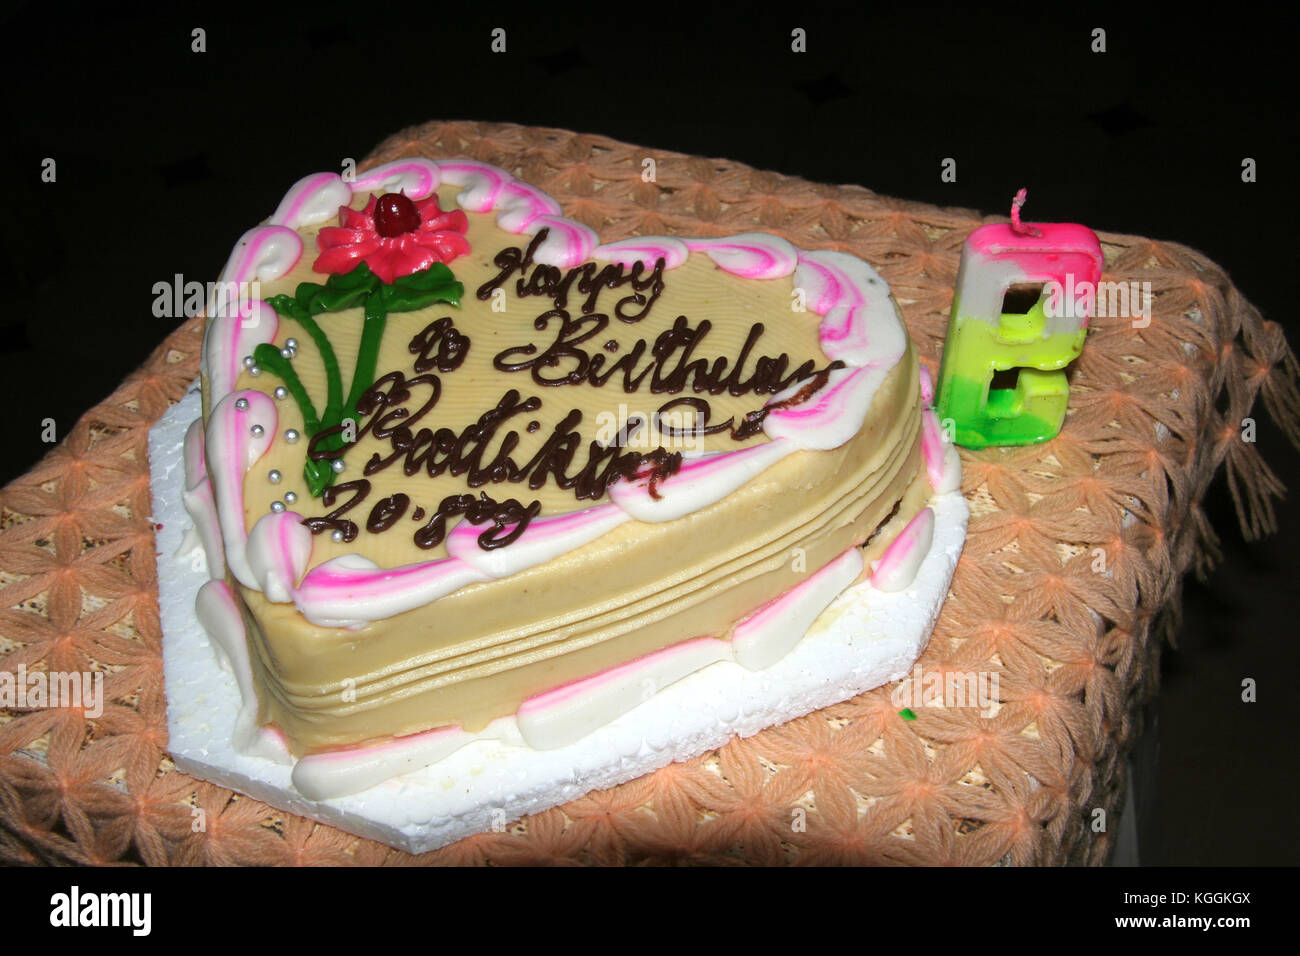 Decorated Spongy Creamy Birthday Cake With Candle